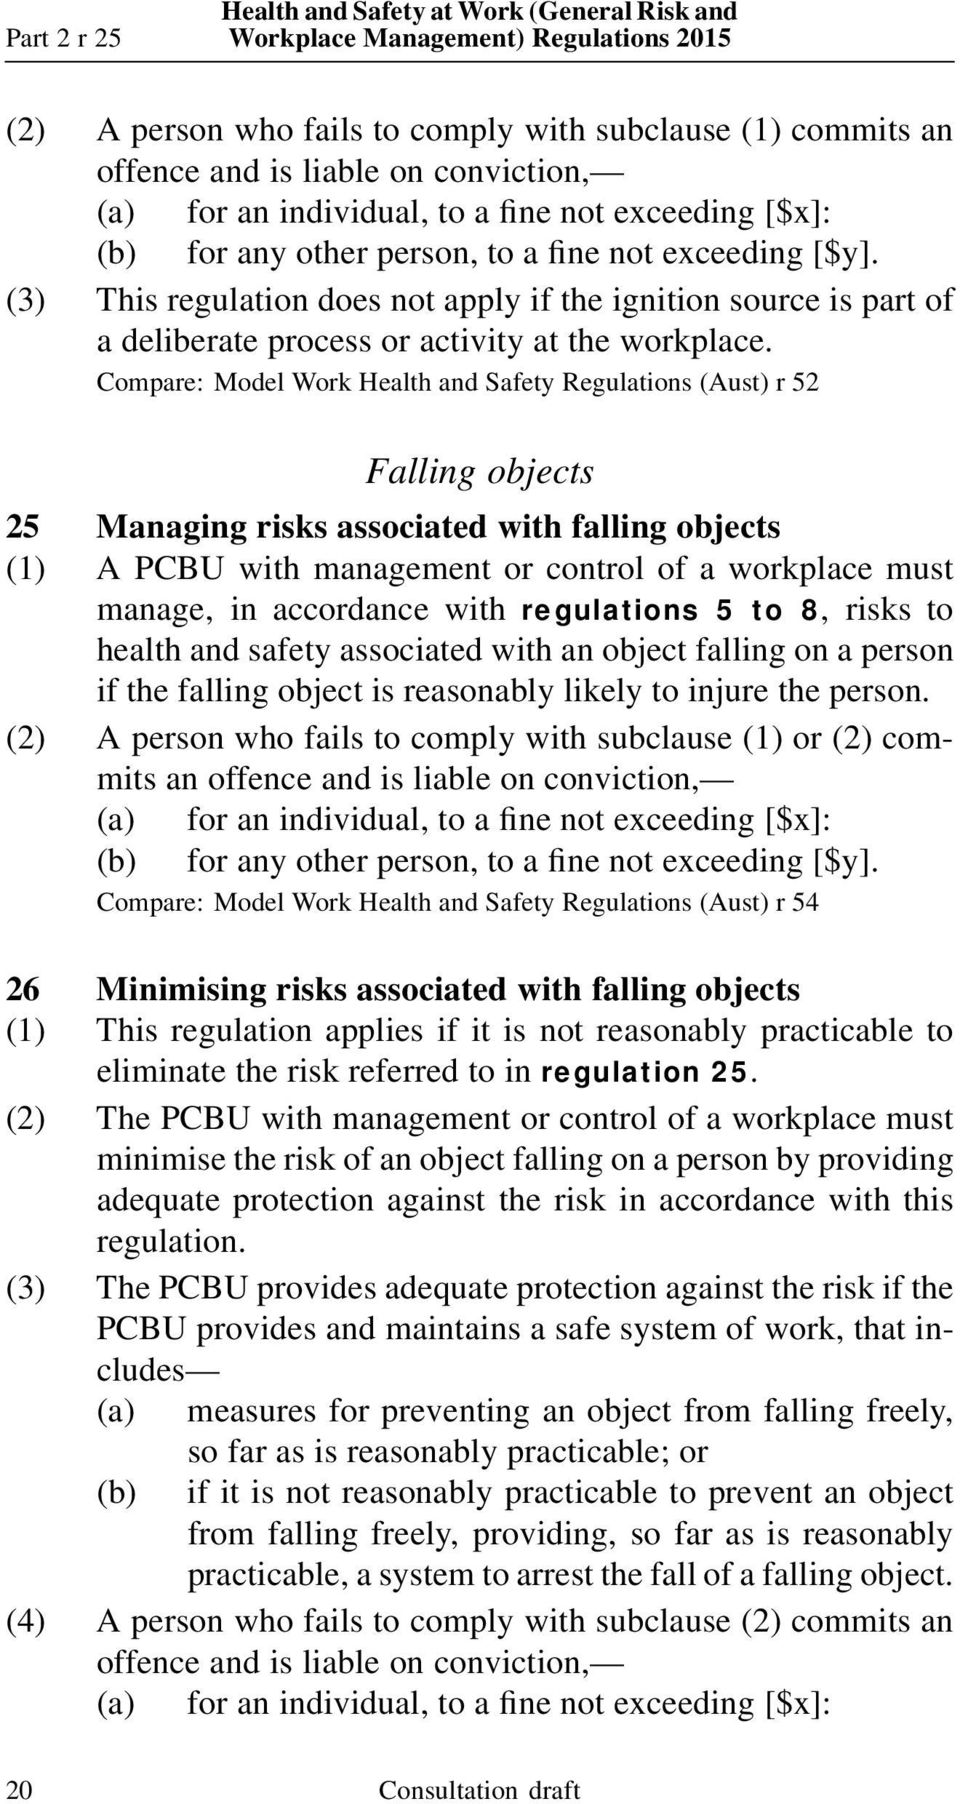 accordance with regulations 5 to 8, risksto health and safety associated with an object falling on a person if the falling object is reasonably likely to injure the person.